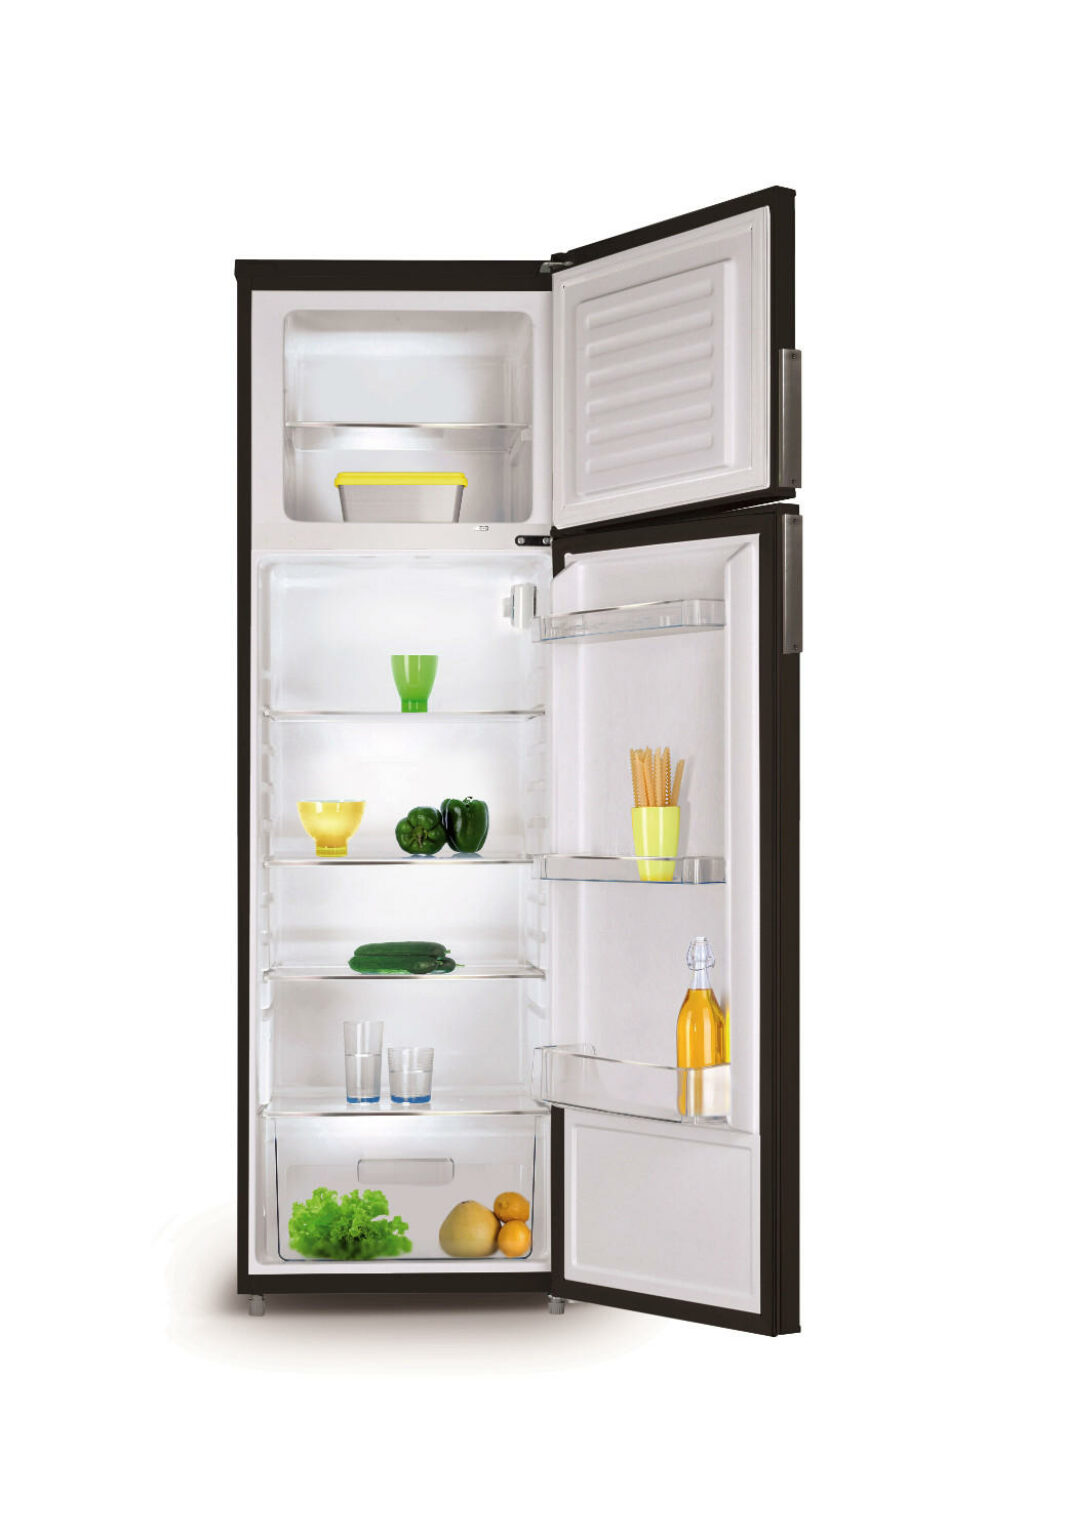 Le Meilleur Refrigerator With 2 Doors In Black Matte Finish 208 L Ce Mois Ci